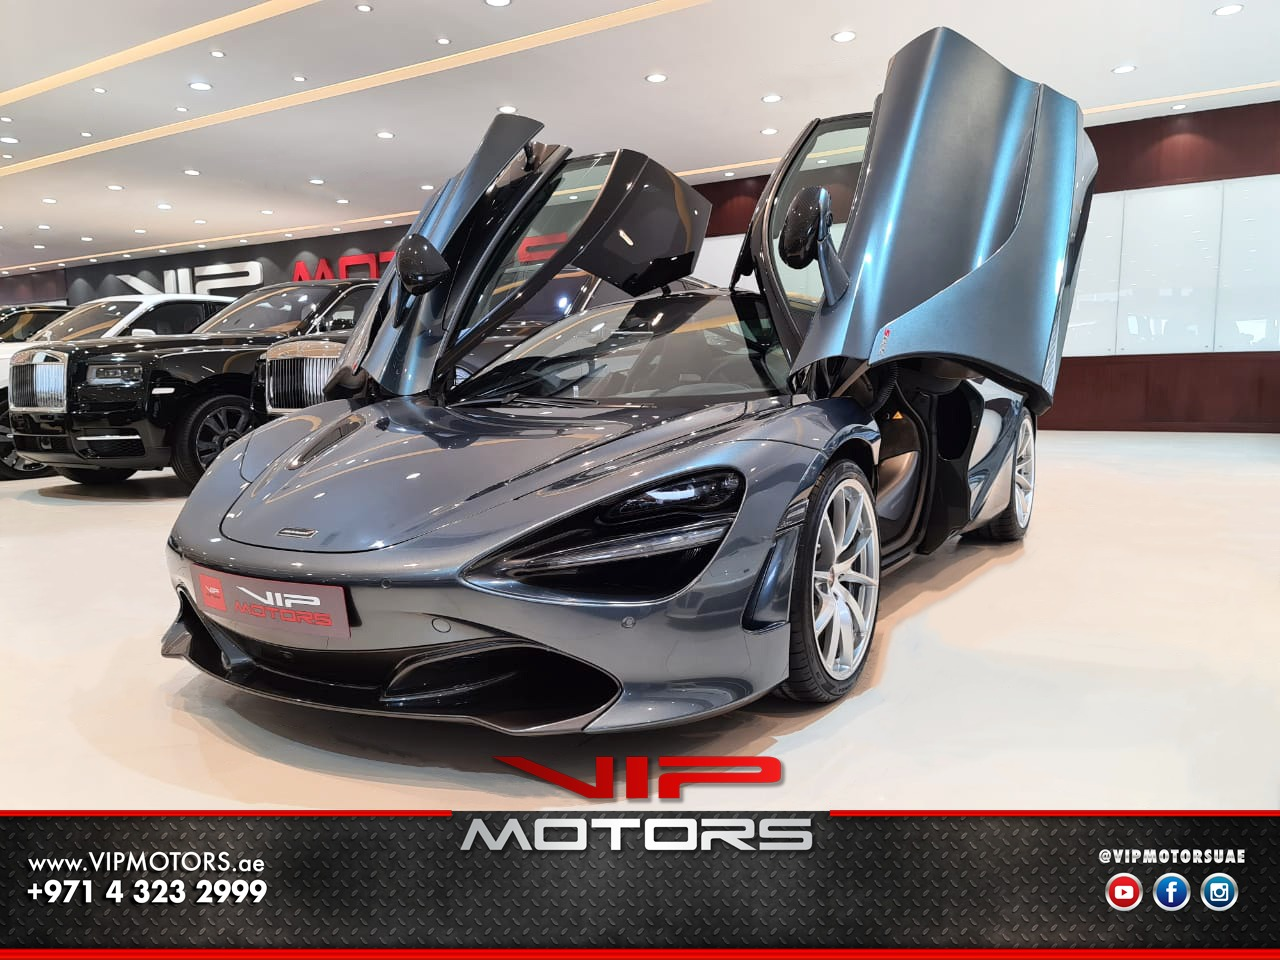 Mclaren-720S-2018-Grey-Front-Side-View-Vip-Motors